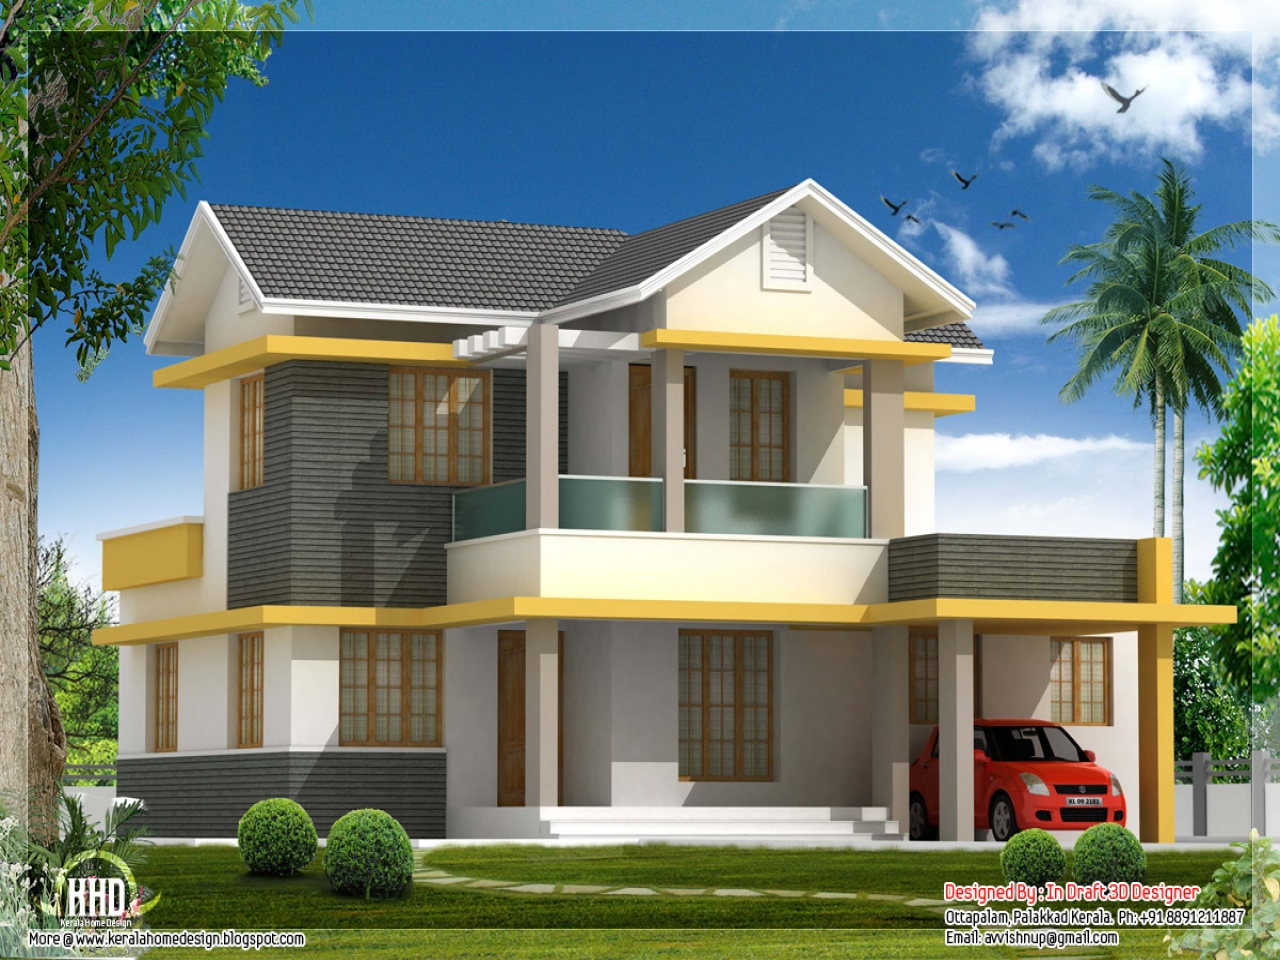 Two Small House Floor Plans Kerala on new design house plans, kerala house plans 1500 square feet, kerala house design plans, ranch modular home floor plans, houses and floor plans, small house plans, maisonette house plans, 2 story modular house plans, blueprints for house foundation plans, modern two-story house plans, narrow lot house plans, affordable 2 bedroom house plans, house beautiful house plans, minimalist home floor plans, kerala 3 bedroom house plans, kerala home, house layout plans, kerala beach house plans, kerala luxury house plans,